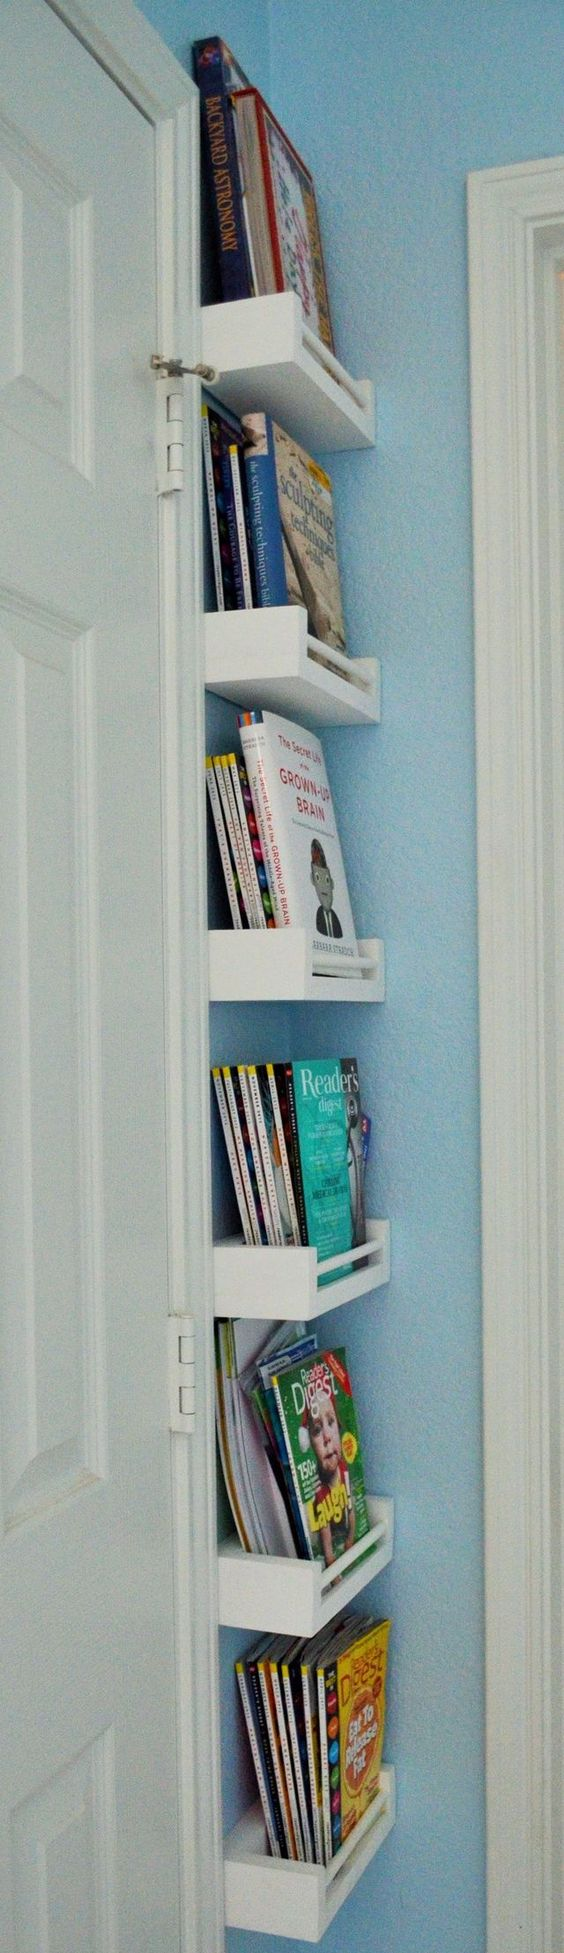 Corner Shelves...love The Idea To Put It Behind The Door When It Opens.  That Is Always Wasted Space. | Organize It | Pinterest | Corner Shelf,  Shelves And ... Part 63